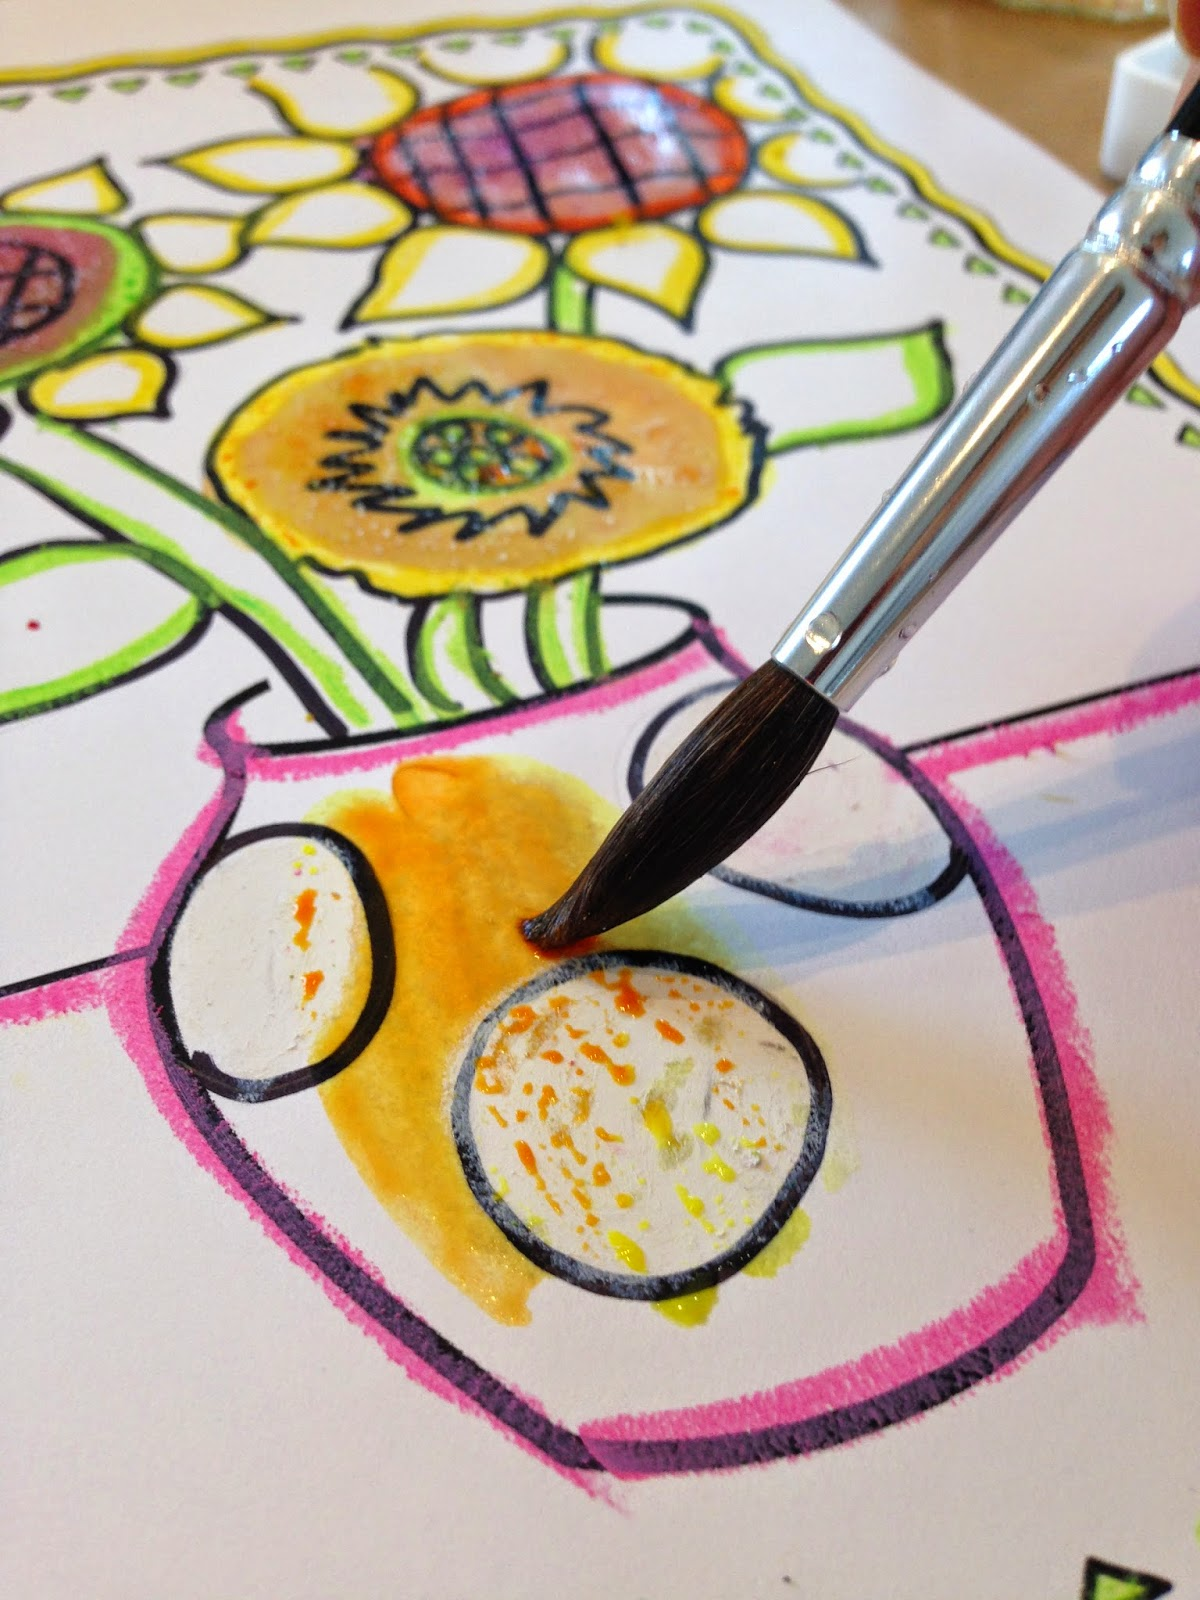 Expressive Monkey demonstrates how to use salt, watercolors and oil pastels on a sunflower drawing.